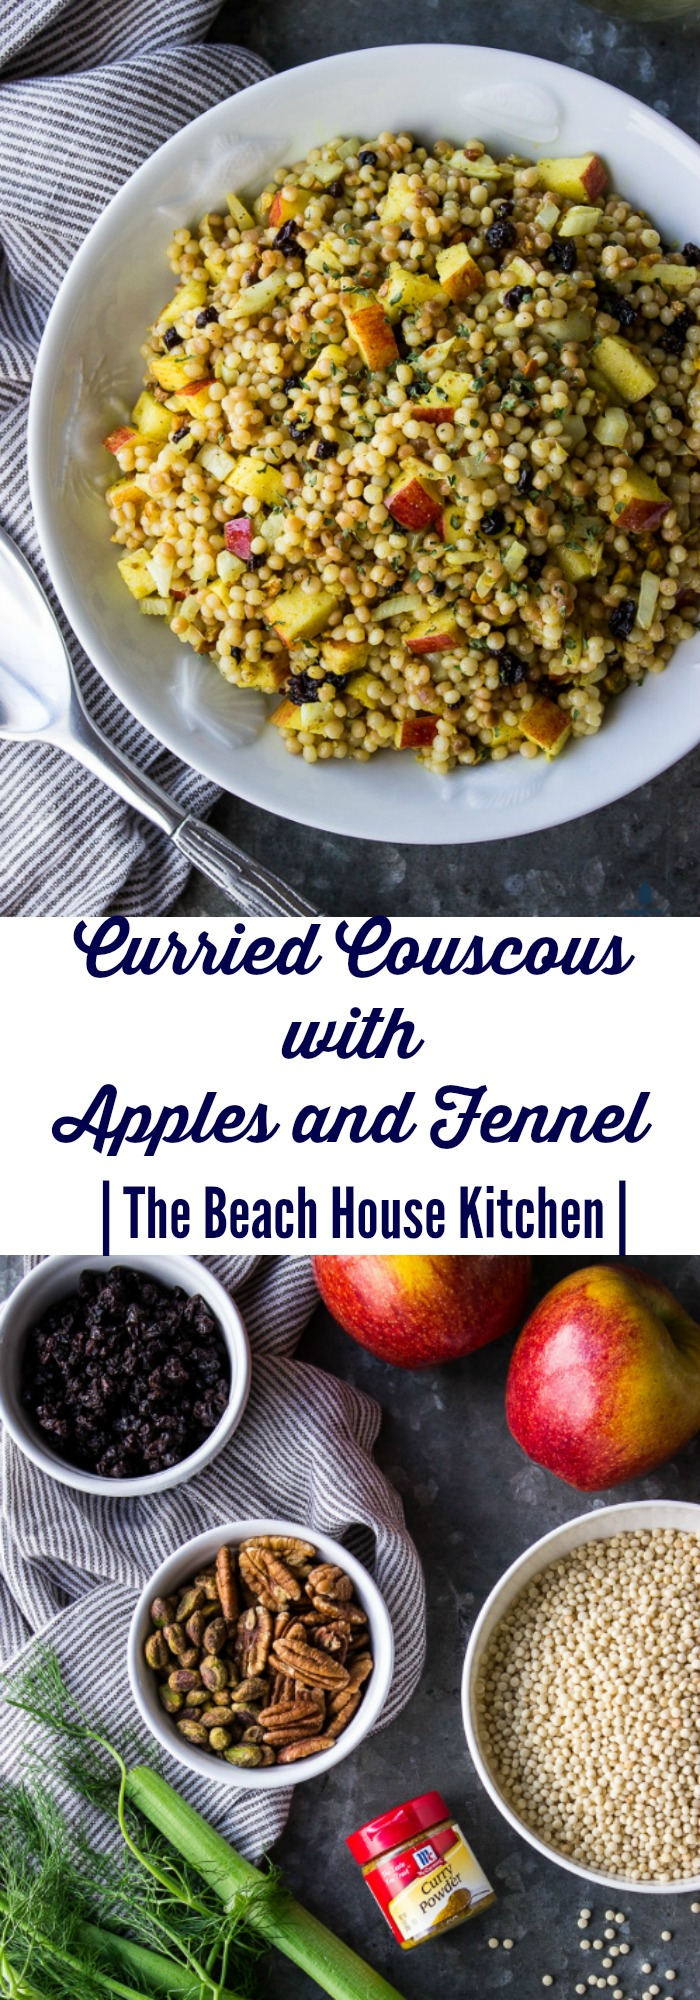 Curried Couscous with Apples and Fennel | The Beach House Kitchen